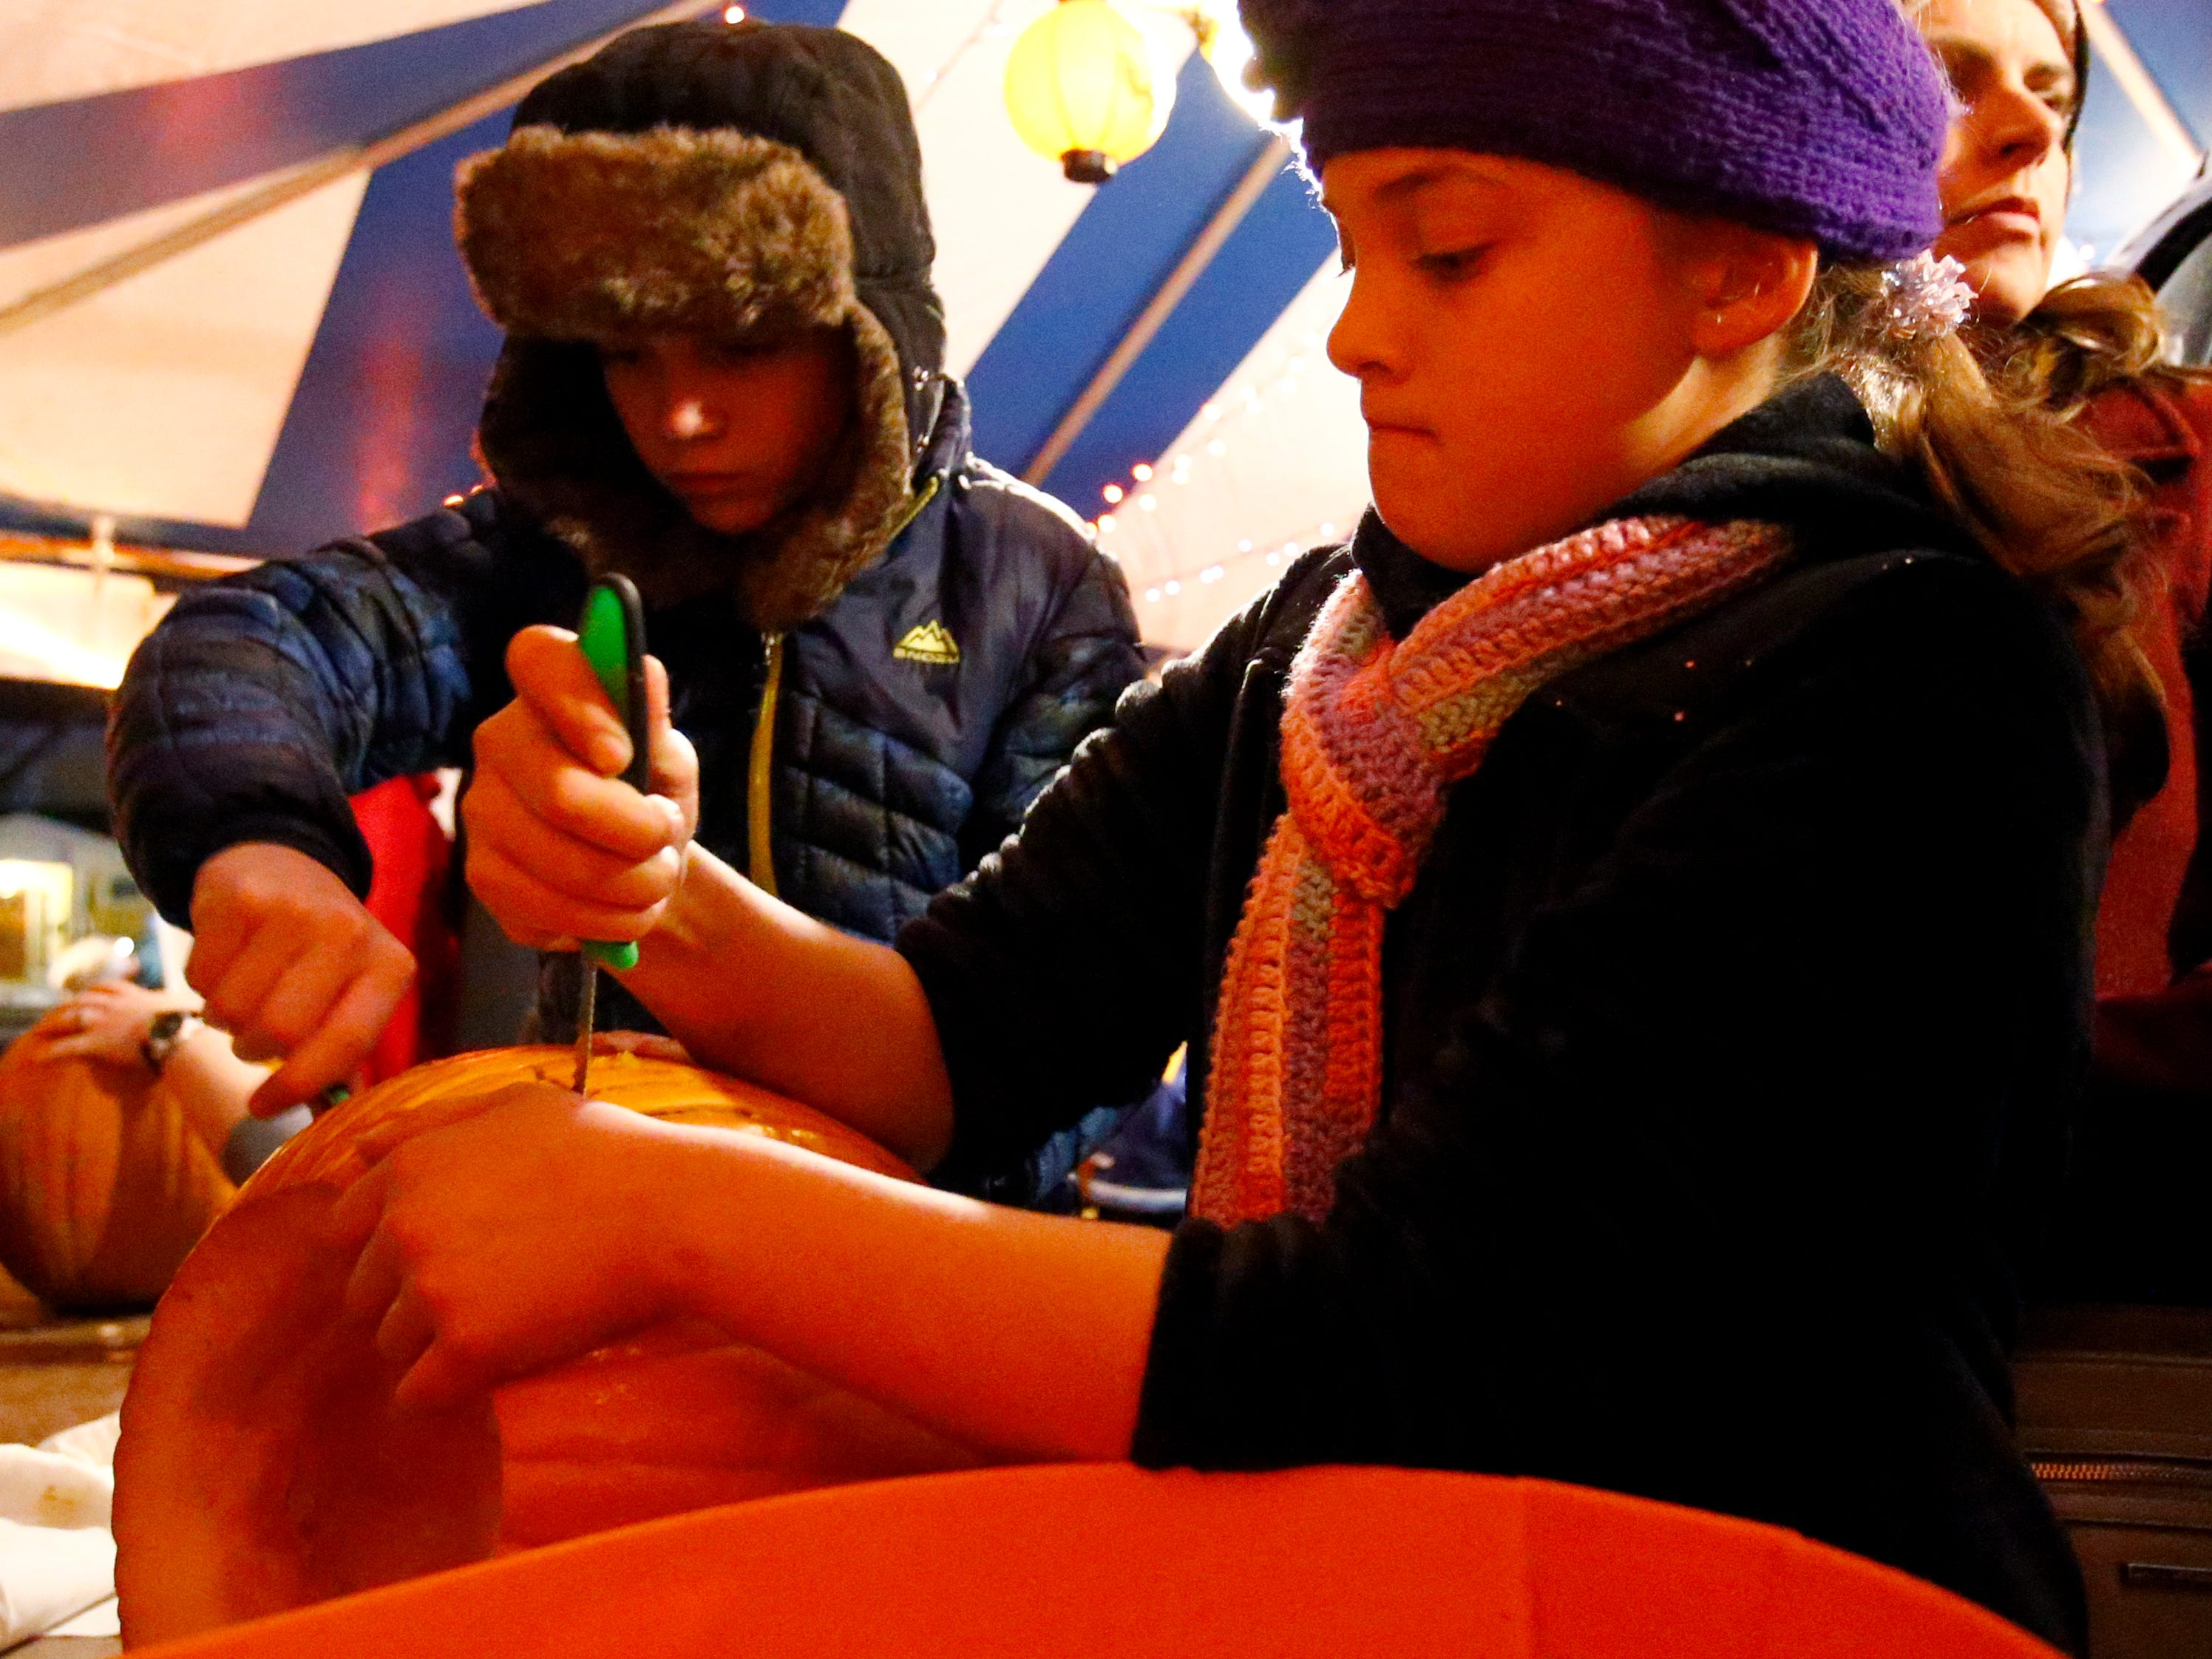 Audrey (front) and George Schroeder of Germantown team up to carve a pumpkin at the 32nd annual Whitefish Bay Great Pumpkin Festival at Old Schoolhouse Park, hosted by the Whitefish Bay Civic Foundation, on Oct. 25. The festival runs from 6 to 9 p.m. Wednesday, Oct. 24, through Sunday, Oct. 28.